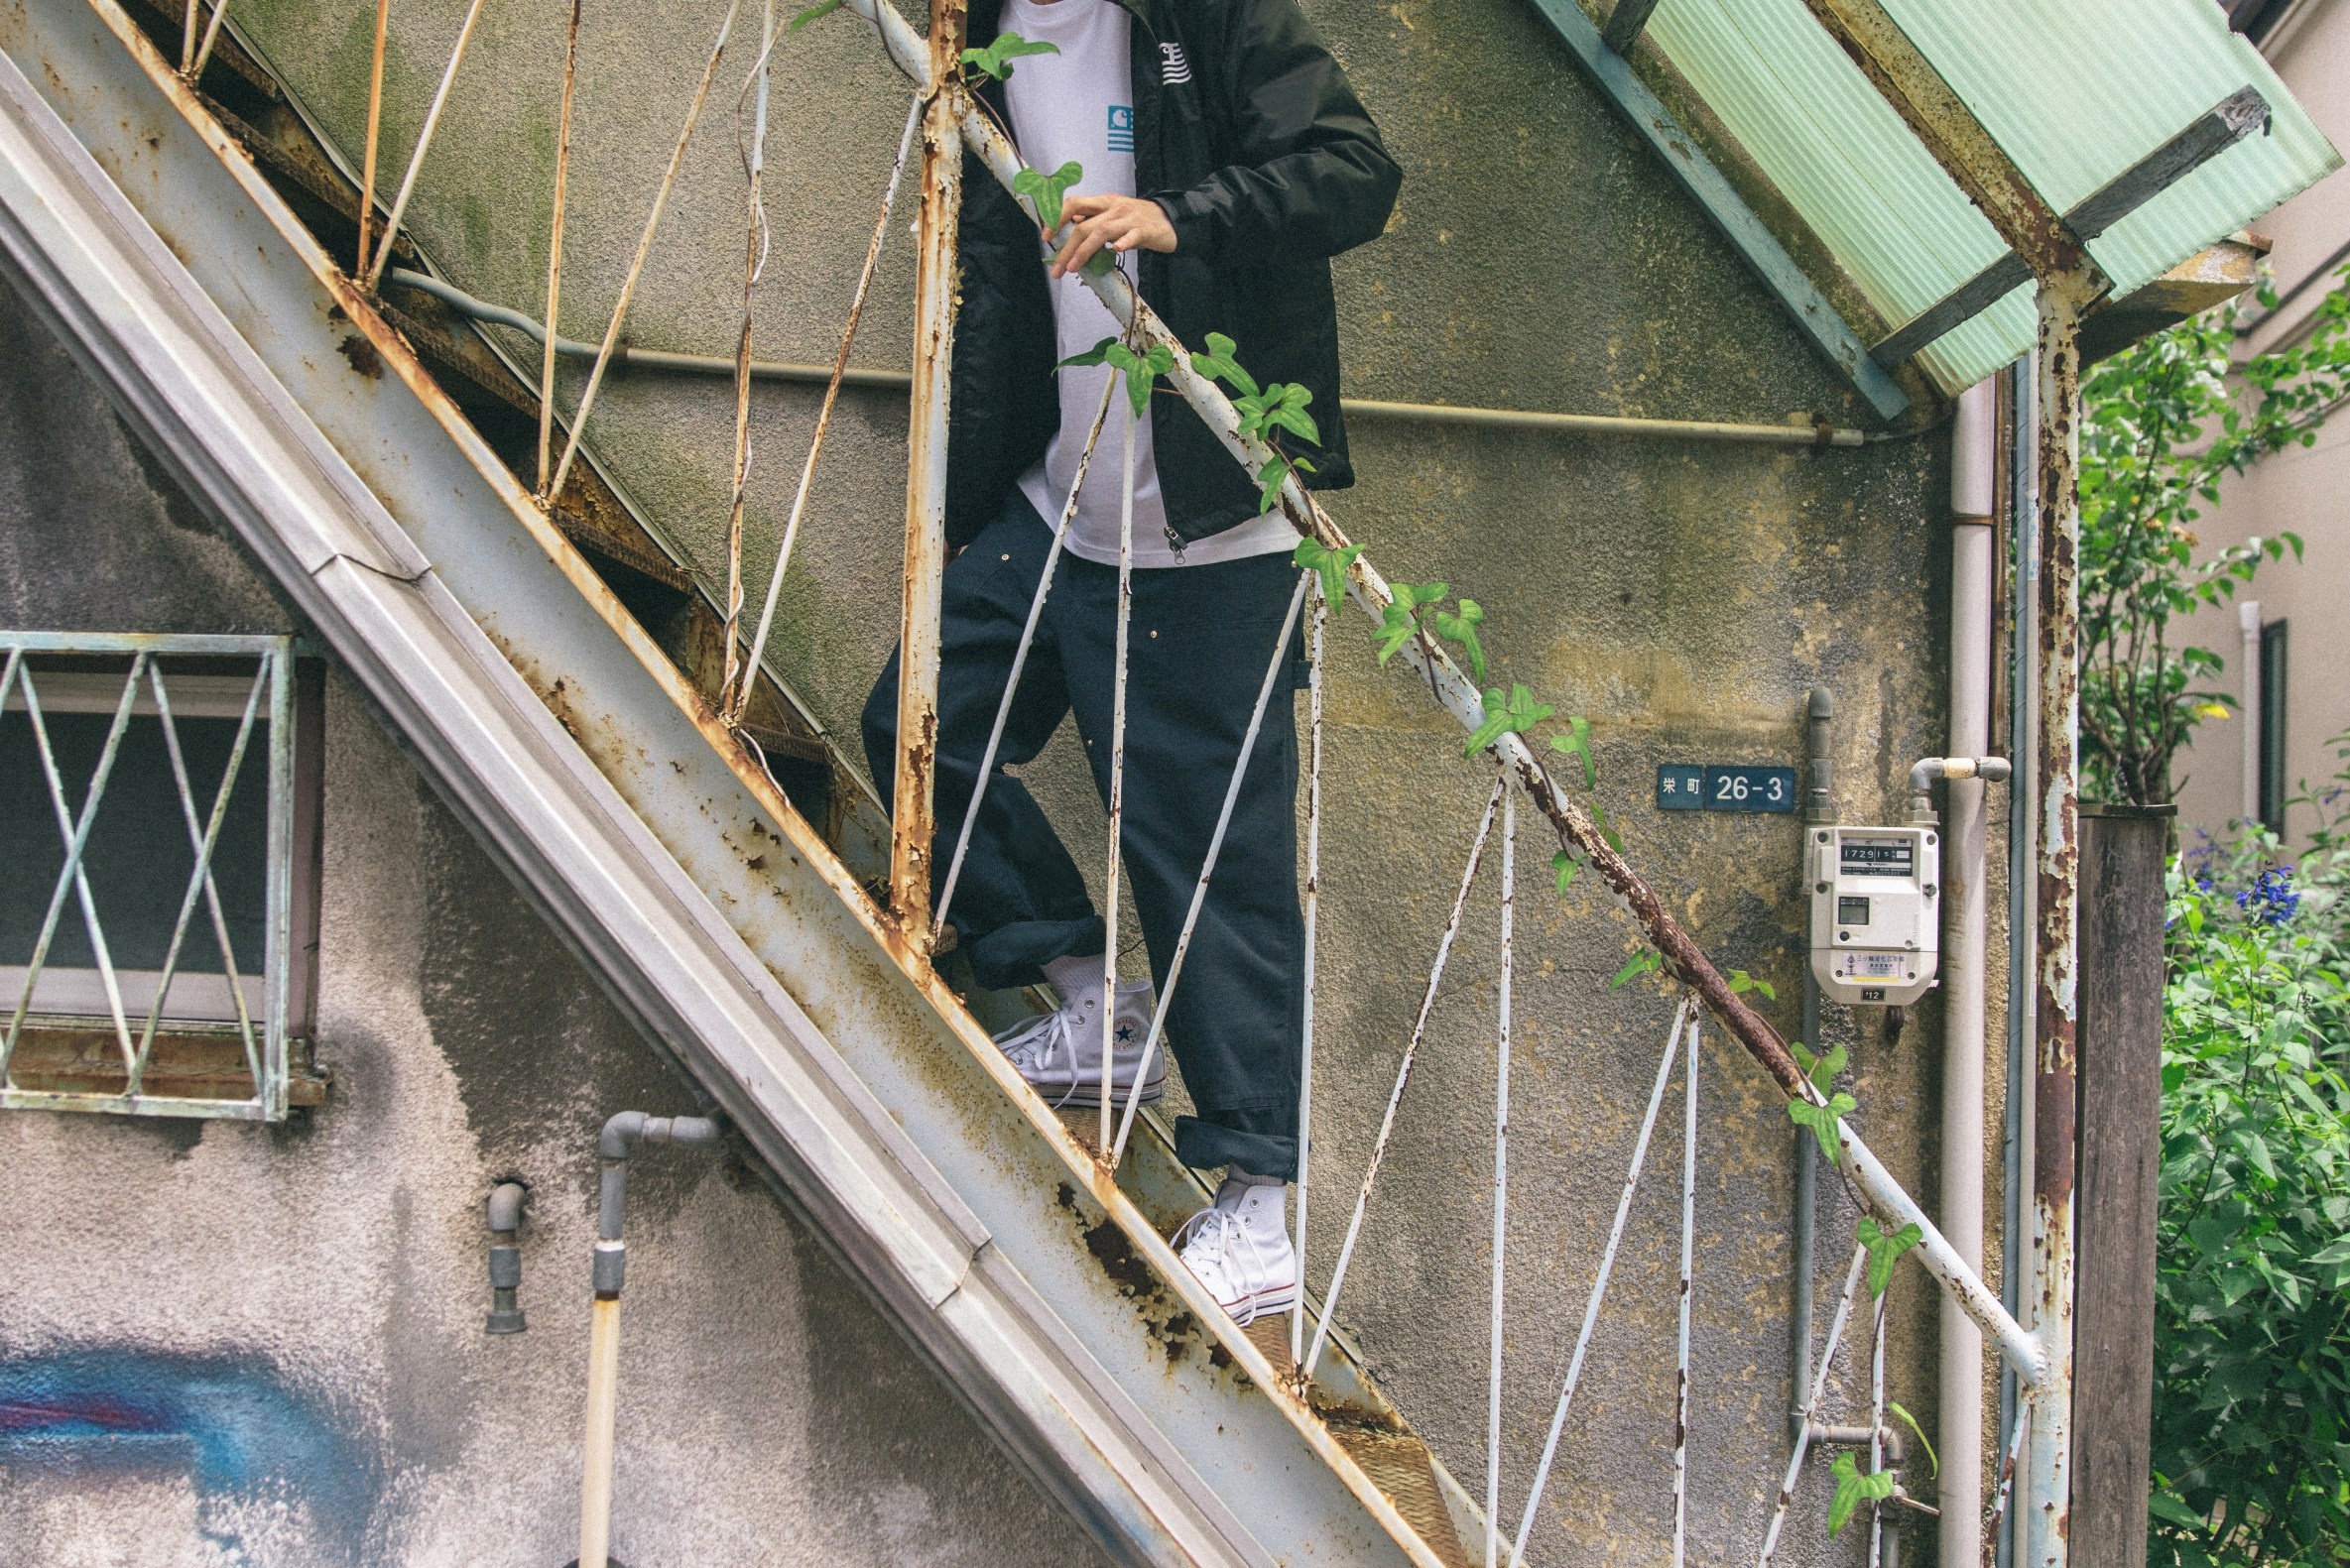 carhartt-wip-2016-fall-capsule-collection-016